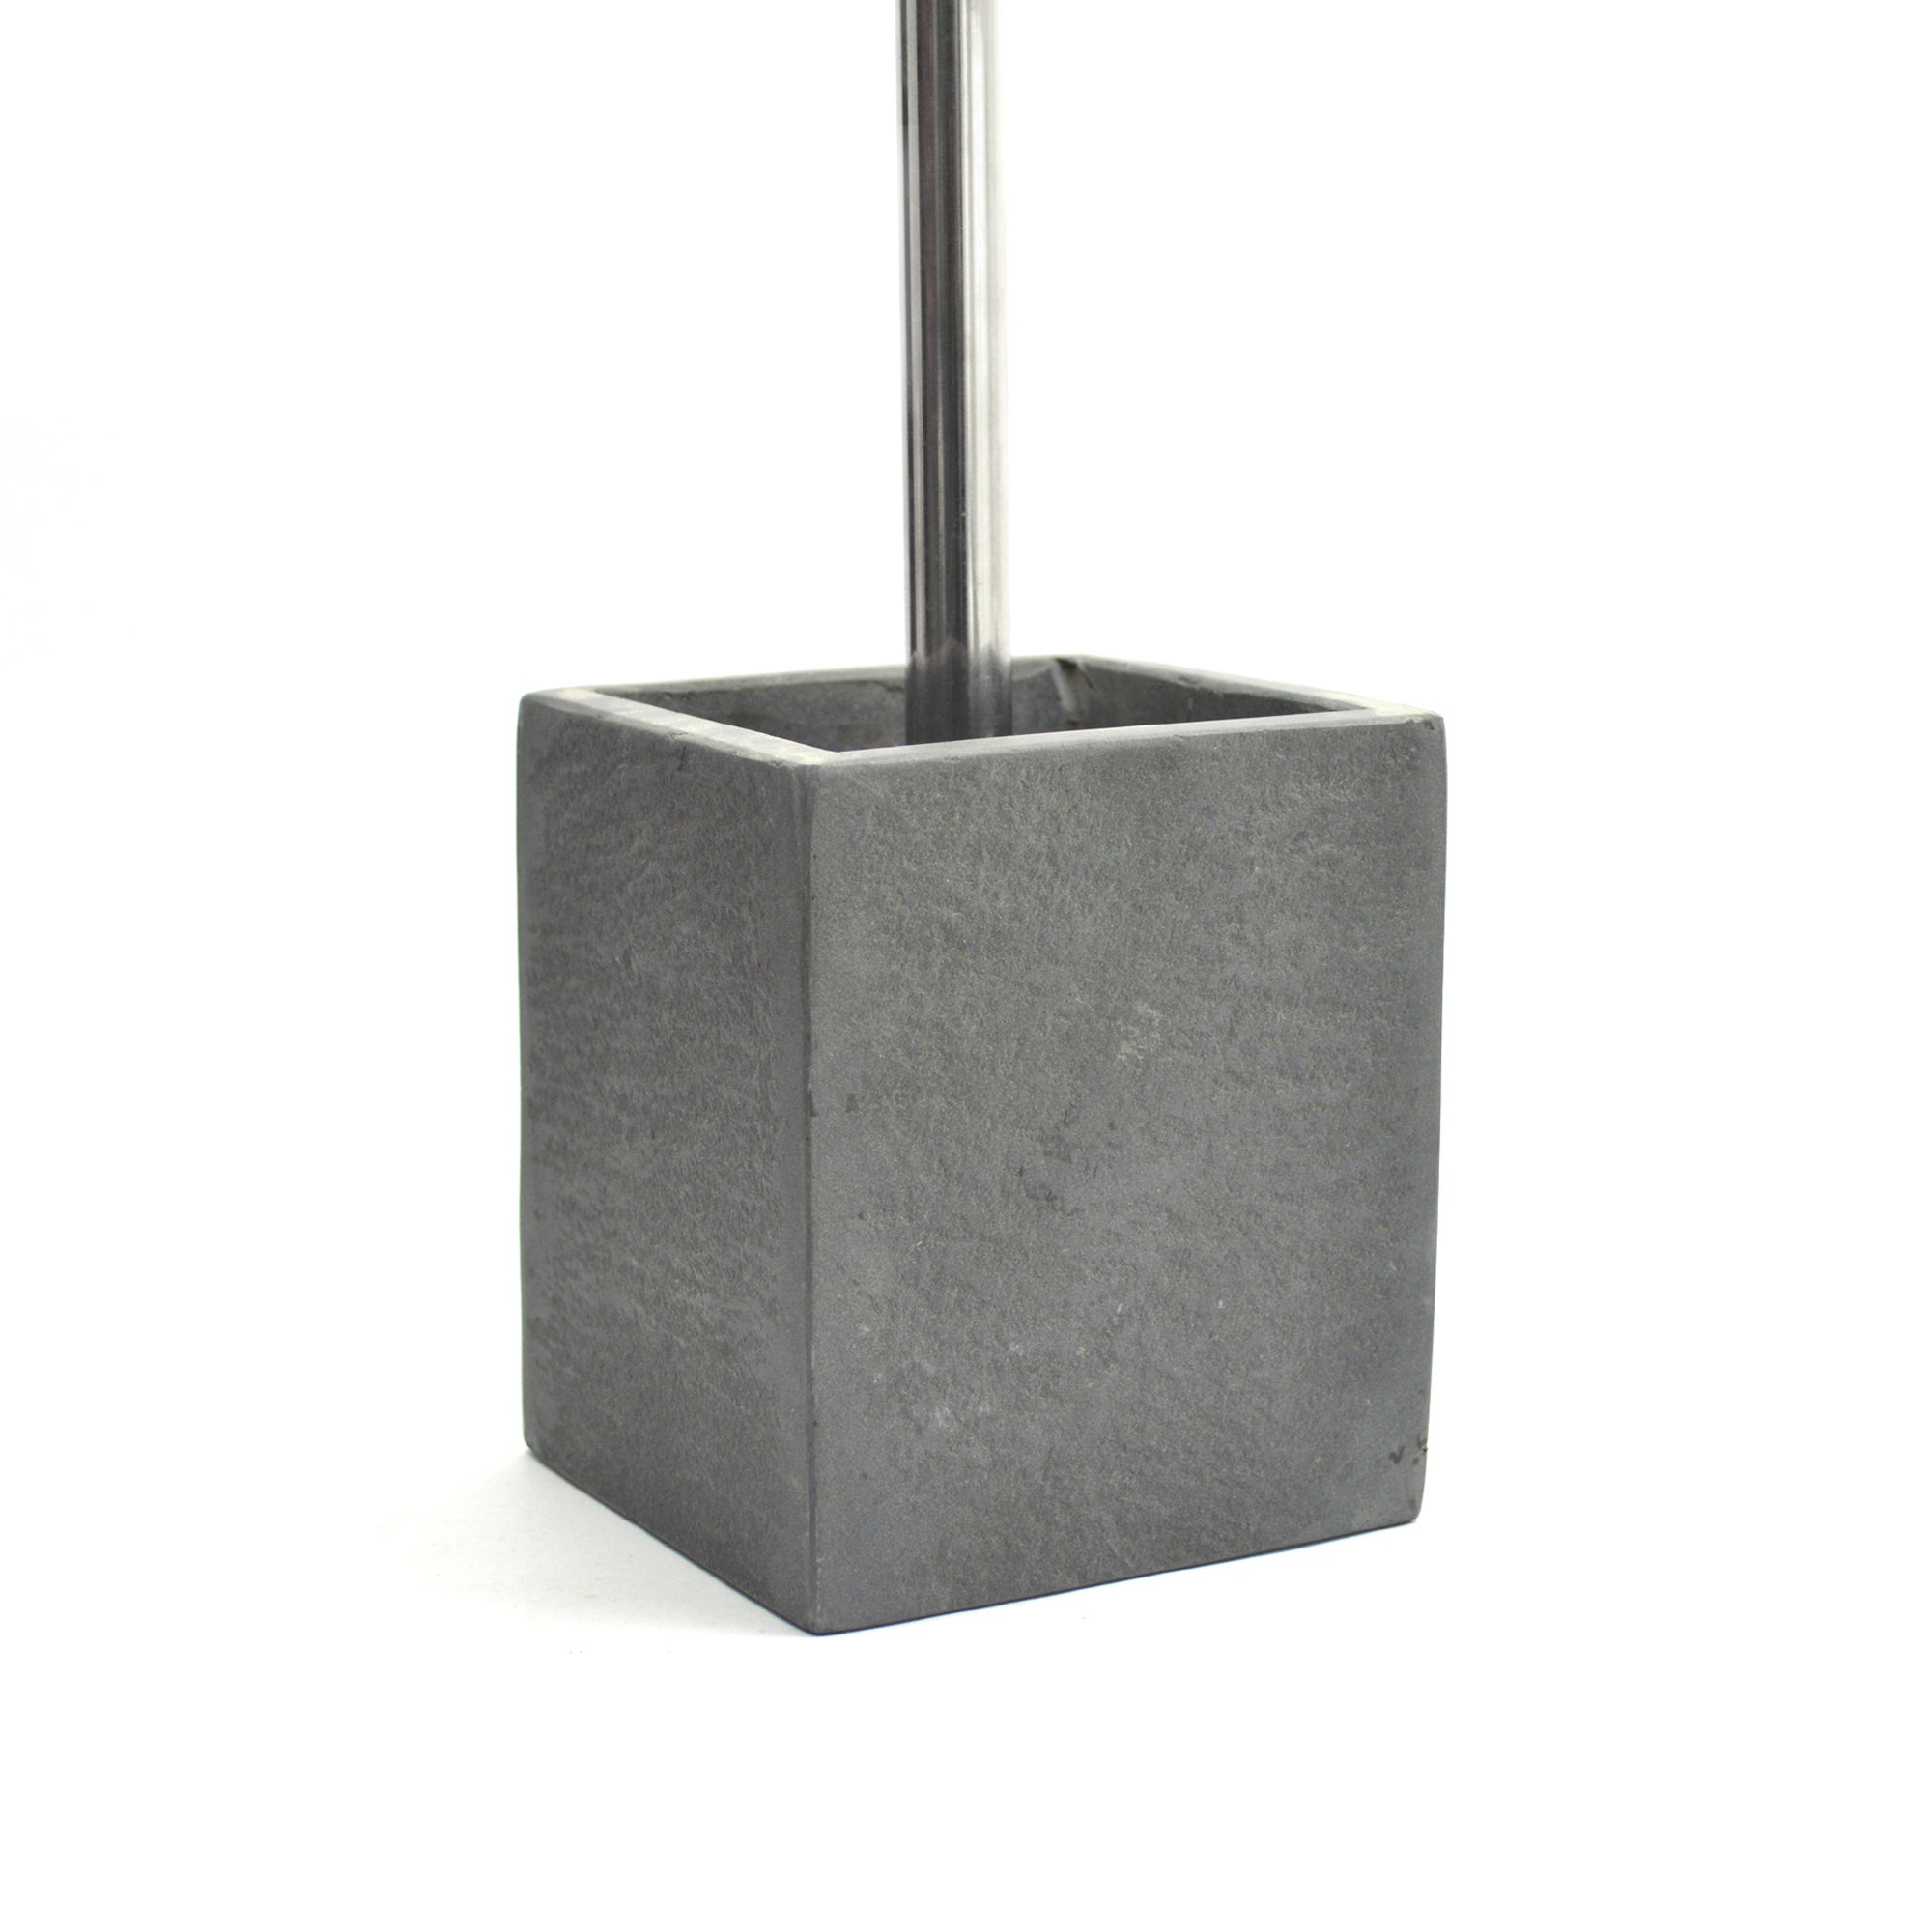 Dorma Henley Slate Toilet Brush Holder